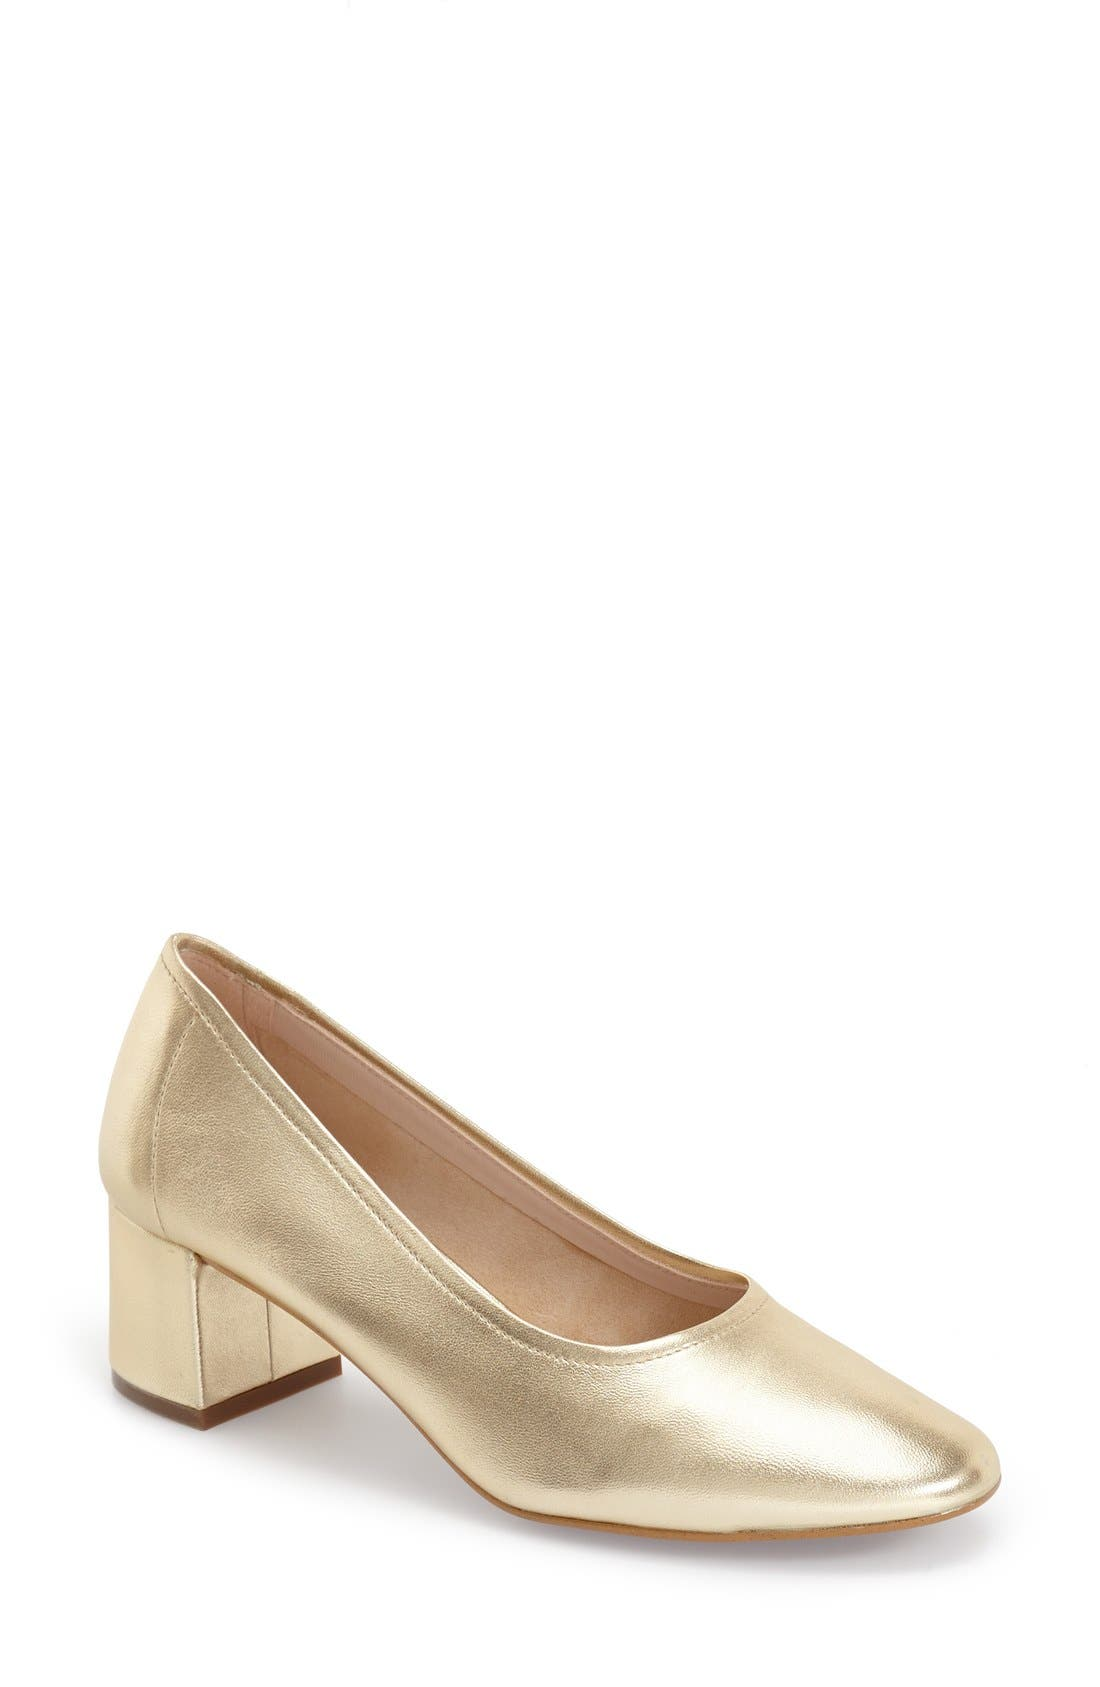 Alternate Image 1 Selected - Topshop 'Juno' Ballet Shoe (Women)